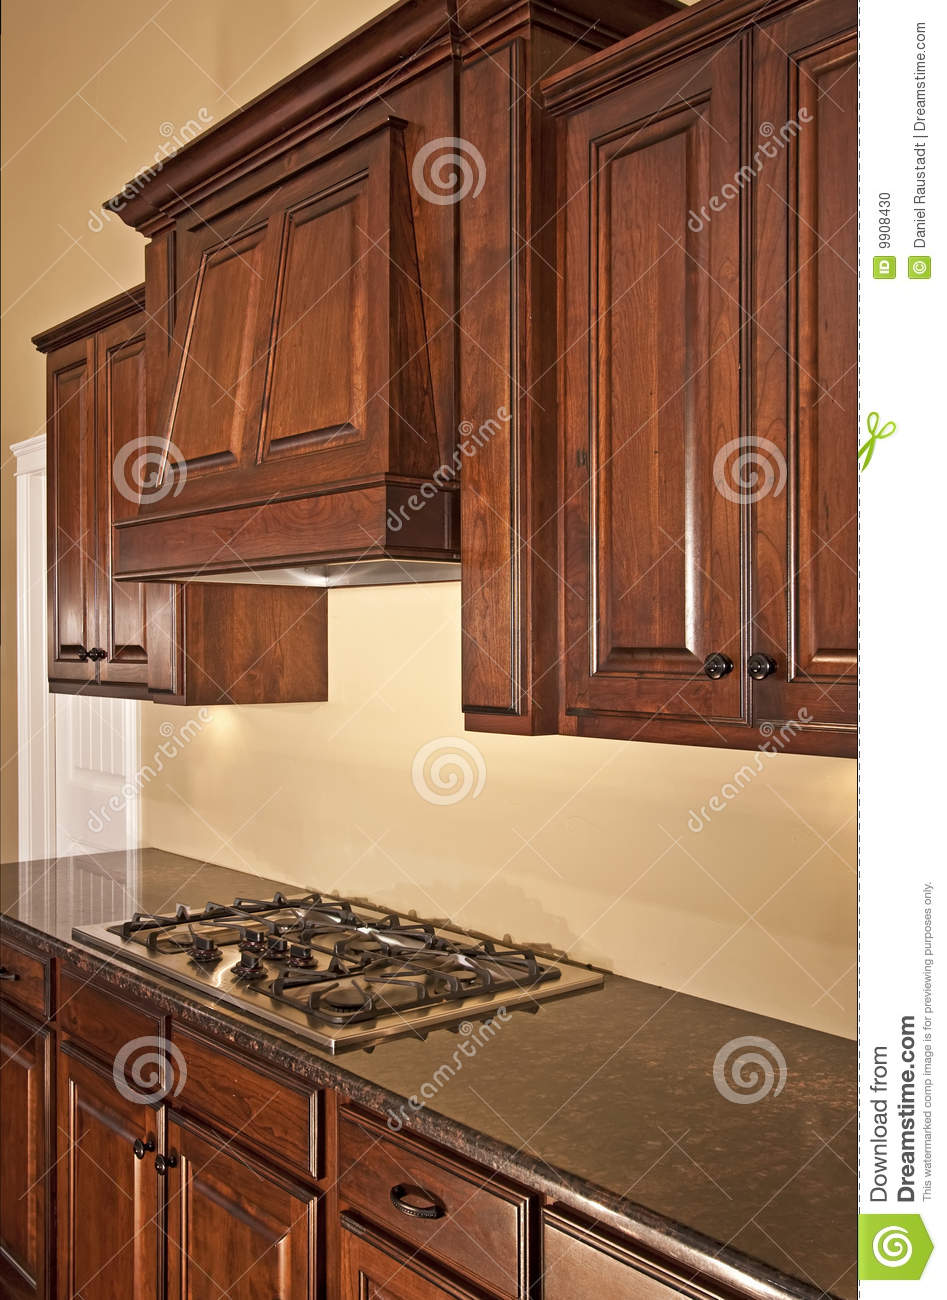 Modern Kitchen Cabinets Range Hood Stock Photo Image Of